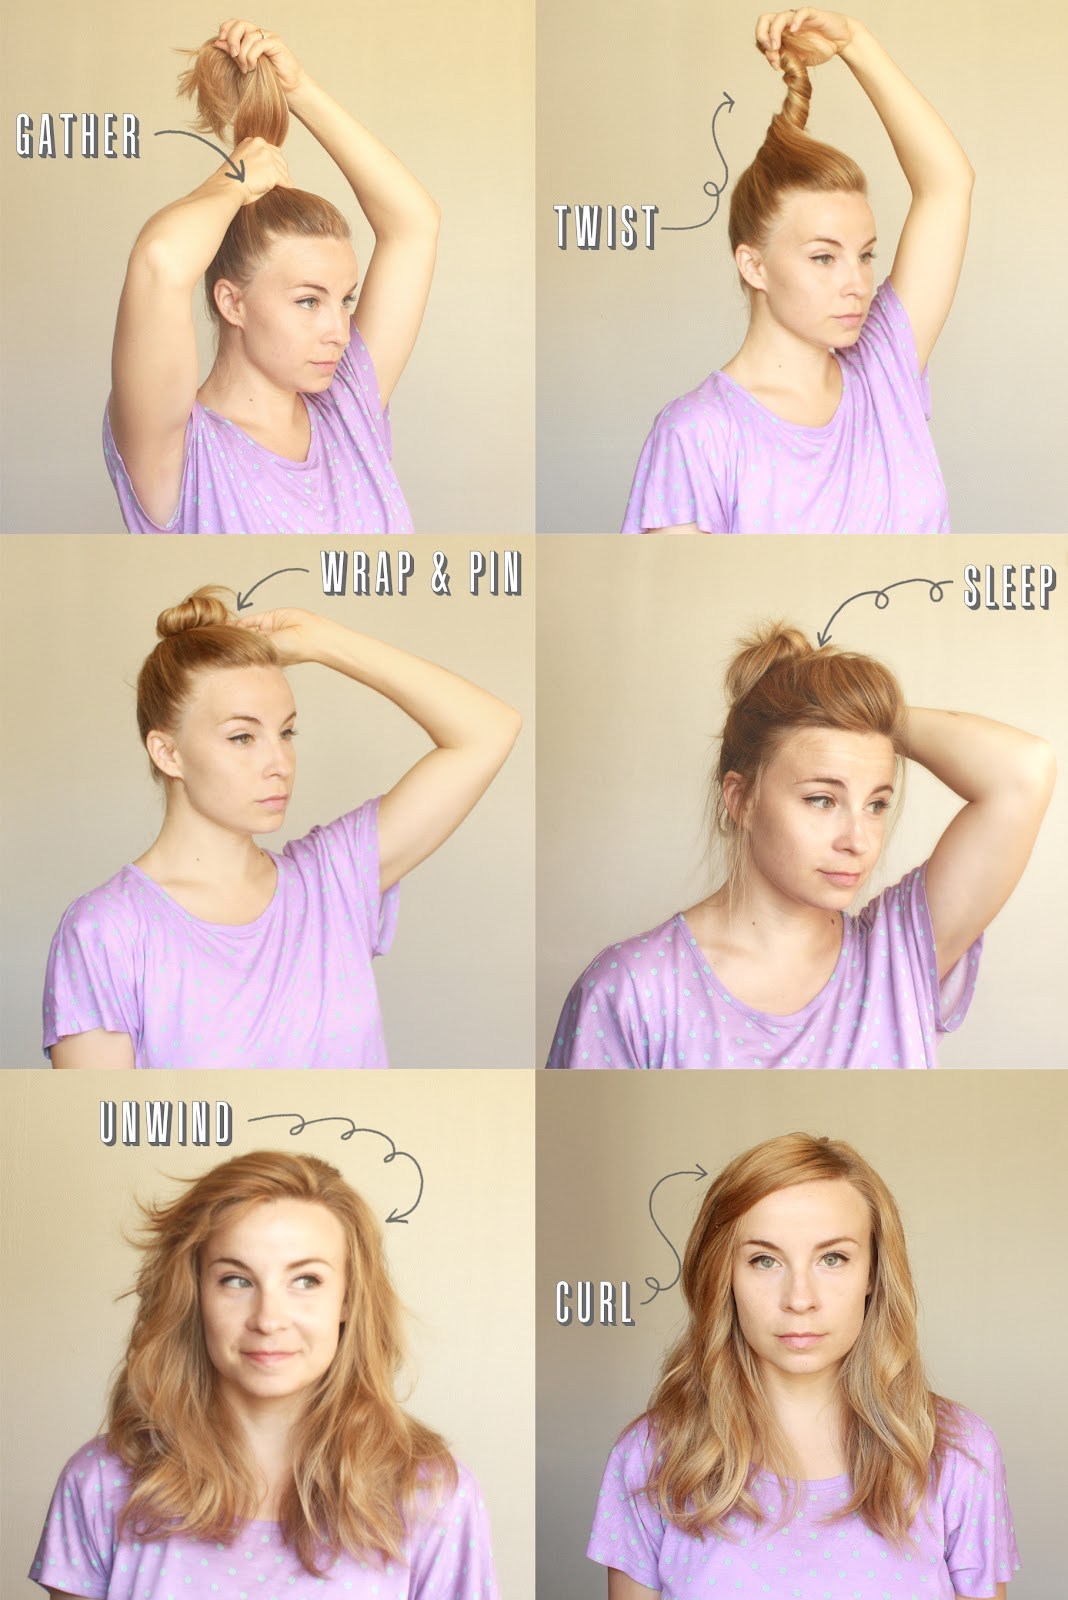 220 Ber Chic For Cheap Hair Tutorial Spin Pin Waves